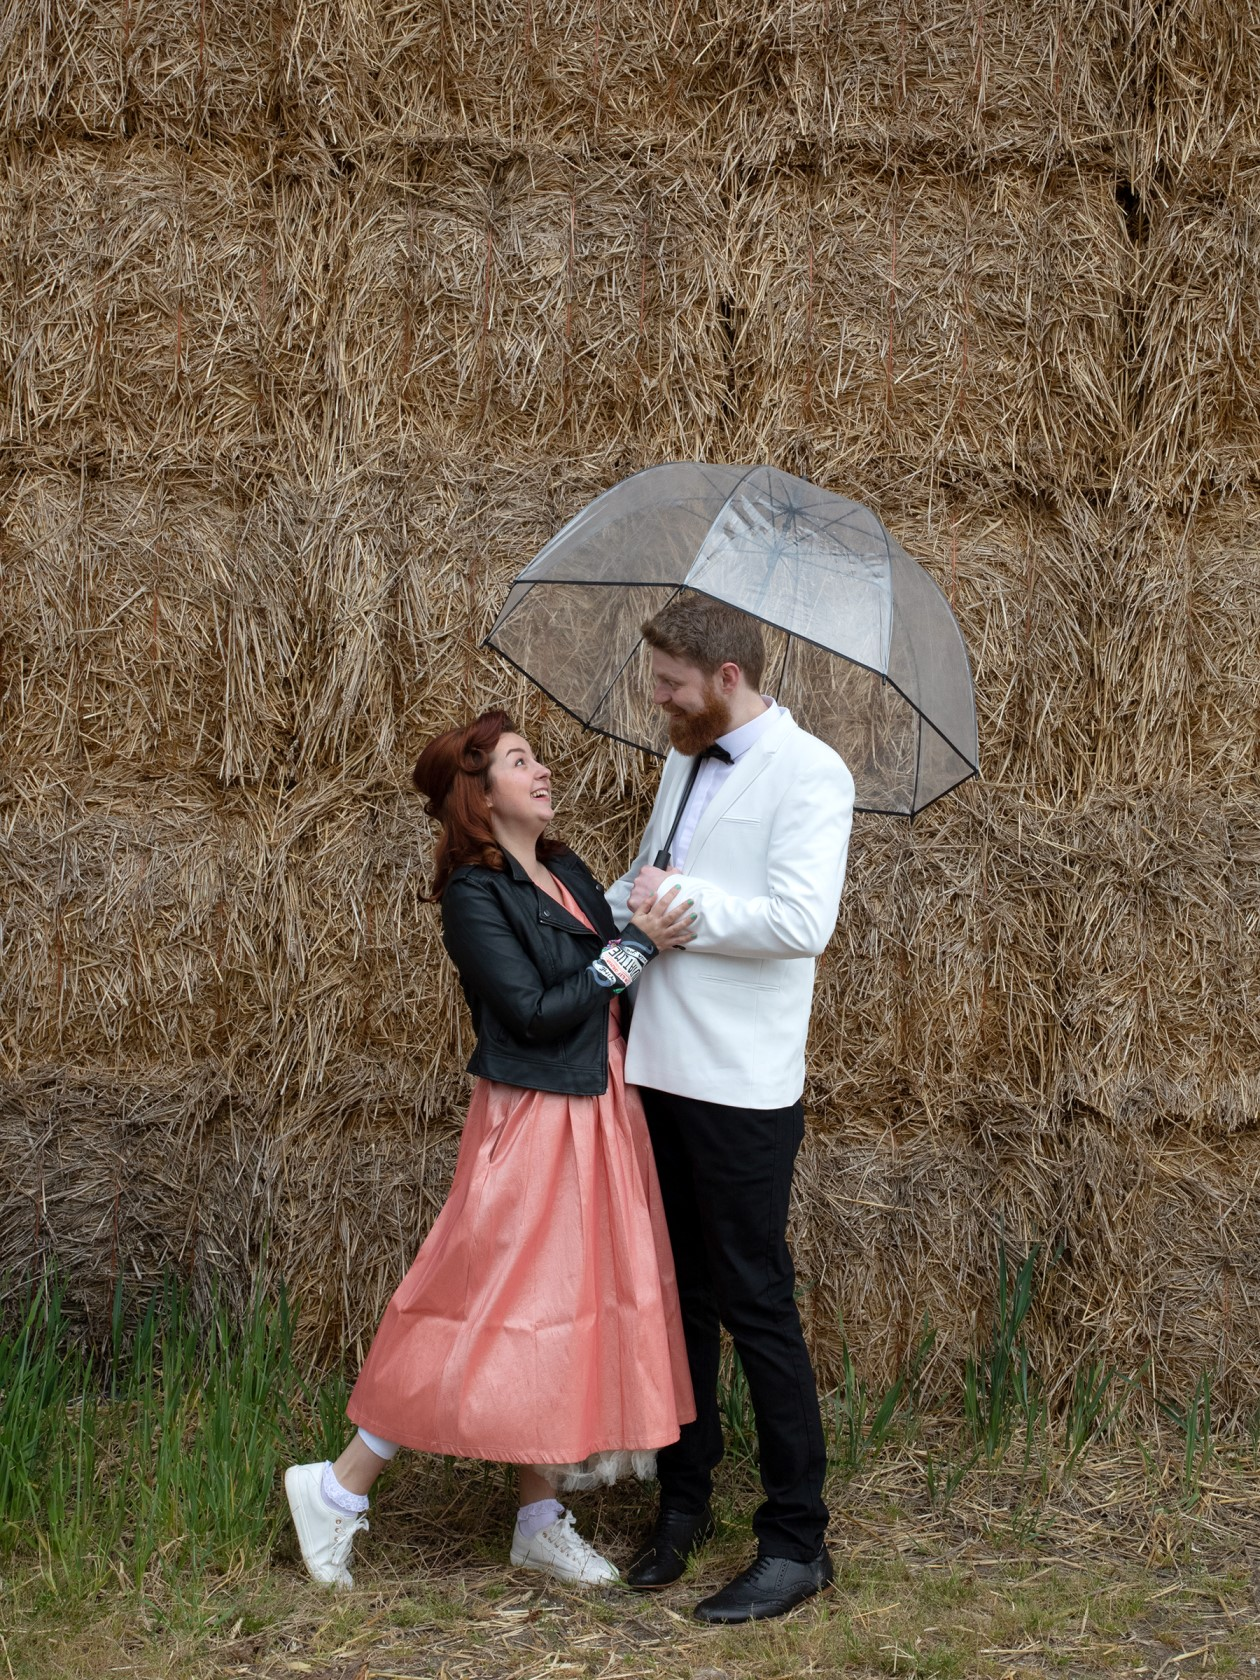 Retro Engagement Shoot- Pink Photographics- Unconventional Wedding- Quirky Wedding- Alternative Wedding- Engagement